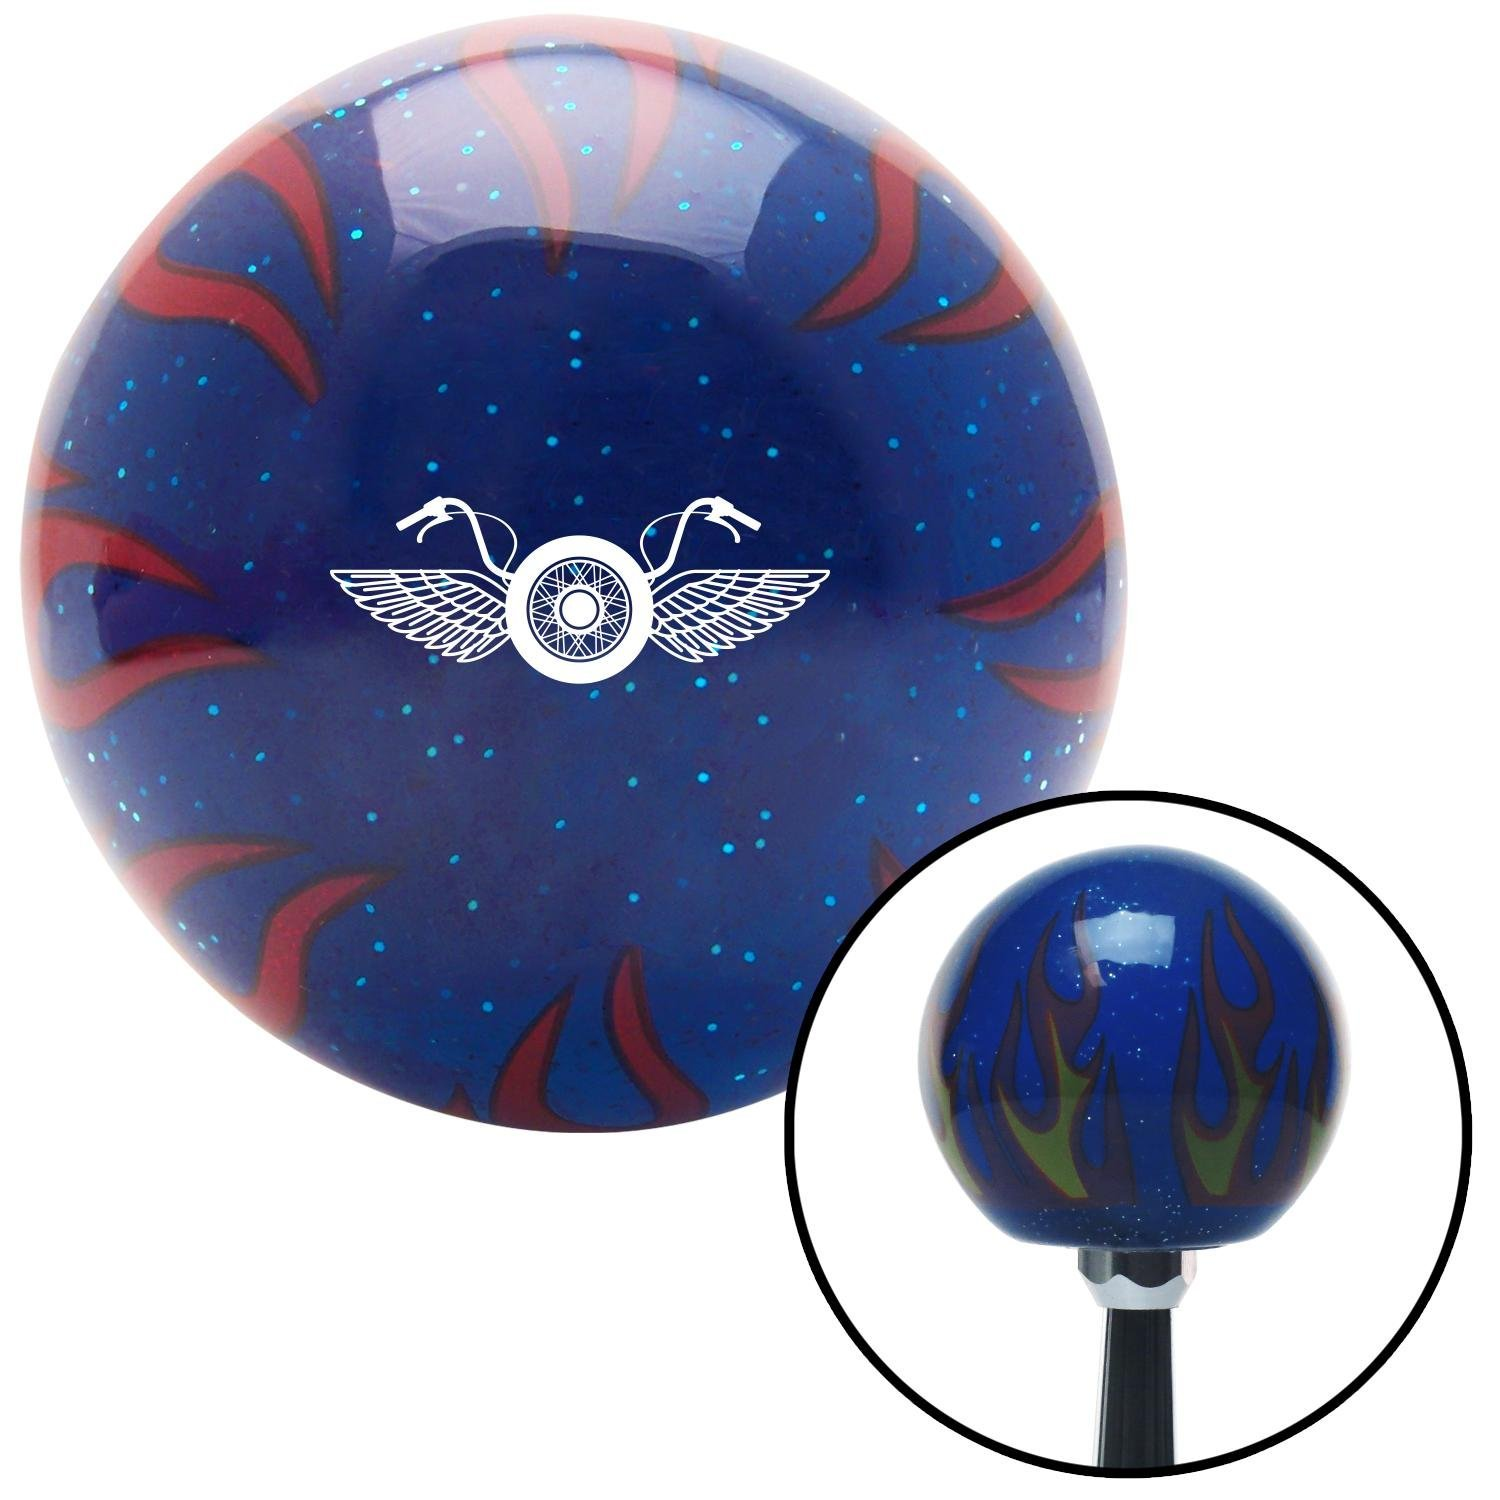 White Motorcycle Handlebars Blue Flame Metal Flake with M16 x 1.5 Insert American Shifter 298069 Shift Knob